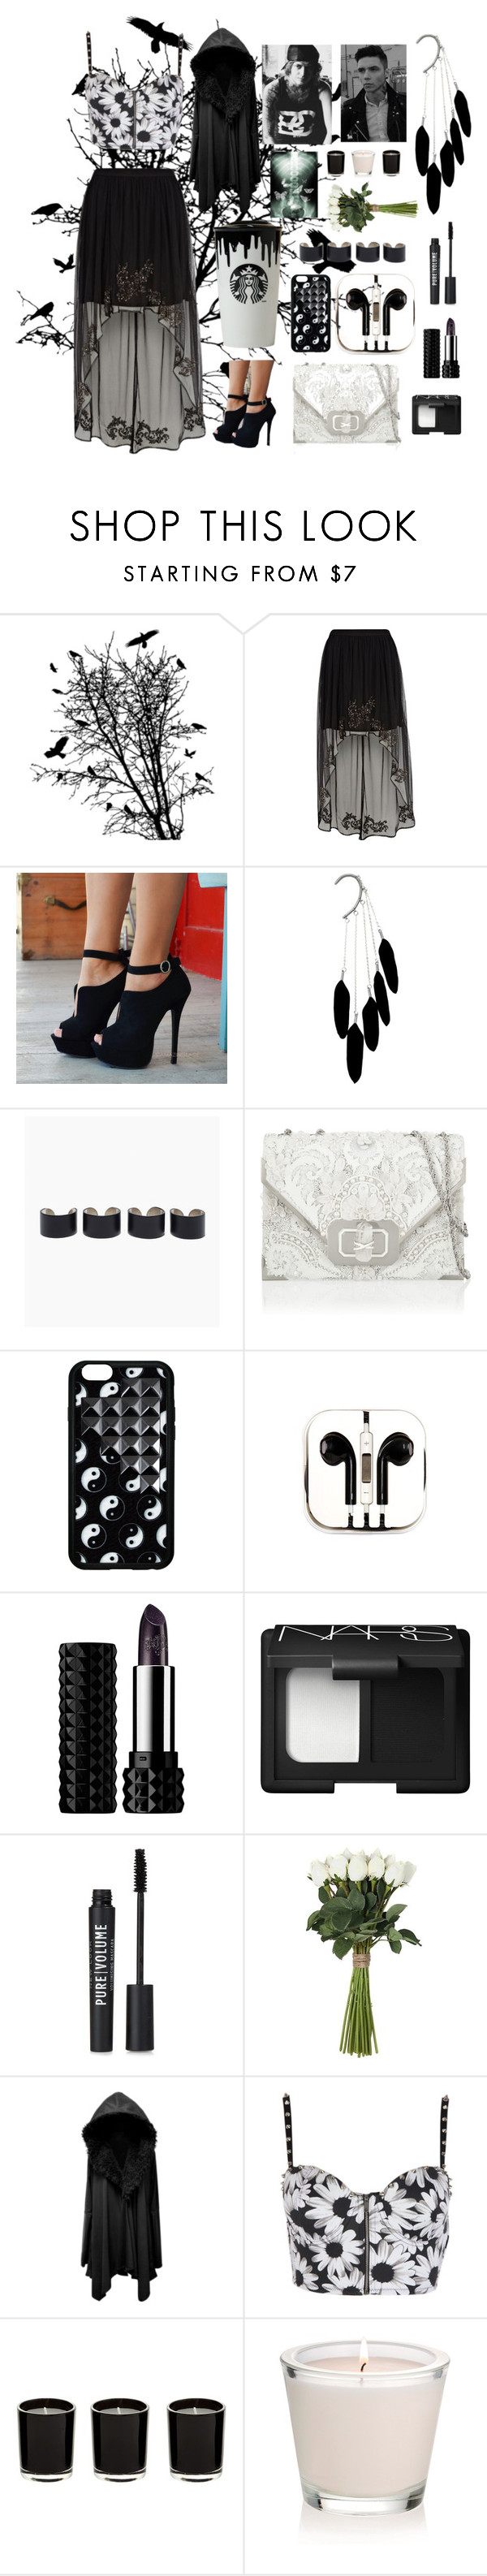 """""""Black And White Date!"""" by nicoleroache001 ❤ liked on Polyvore featuring River Island, Maison Margiela, Marchesa, PhunkeeTree, Band of Outsiders, Kat Von D, NARS Cosmetics and Sia"""